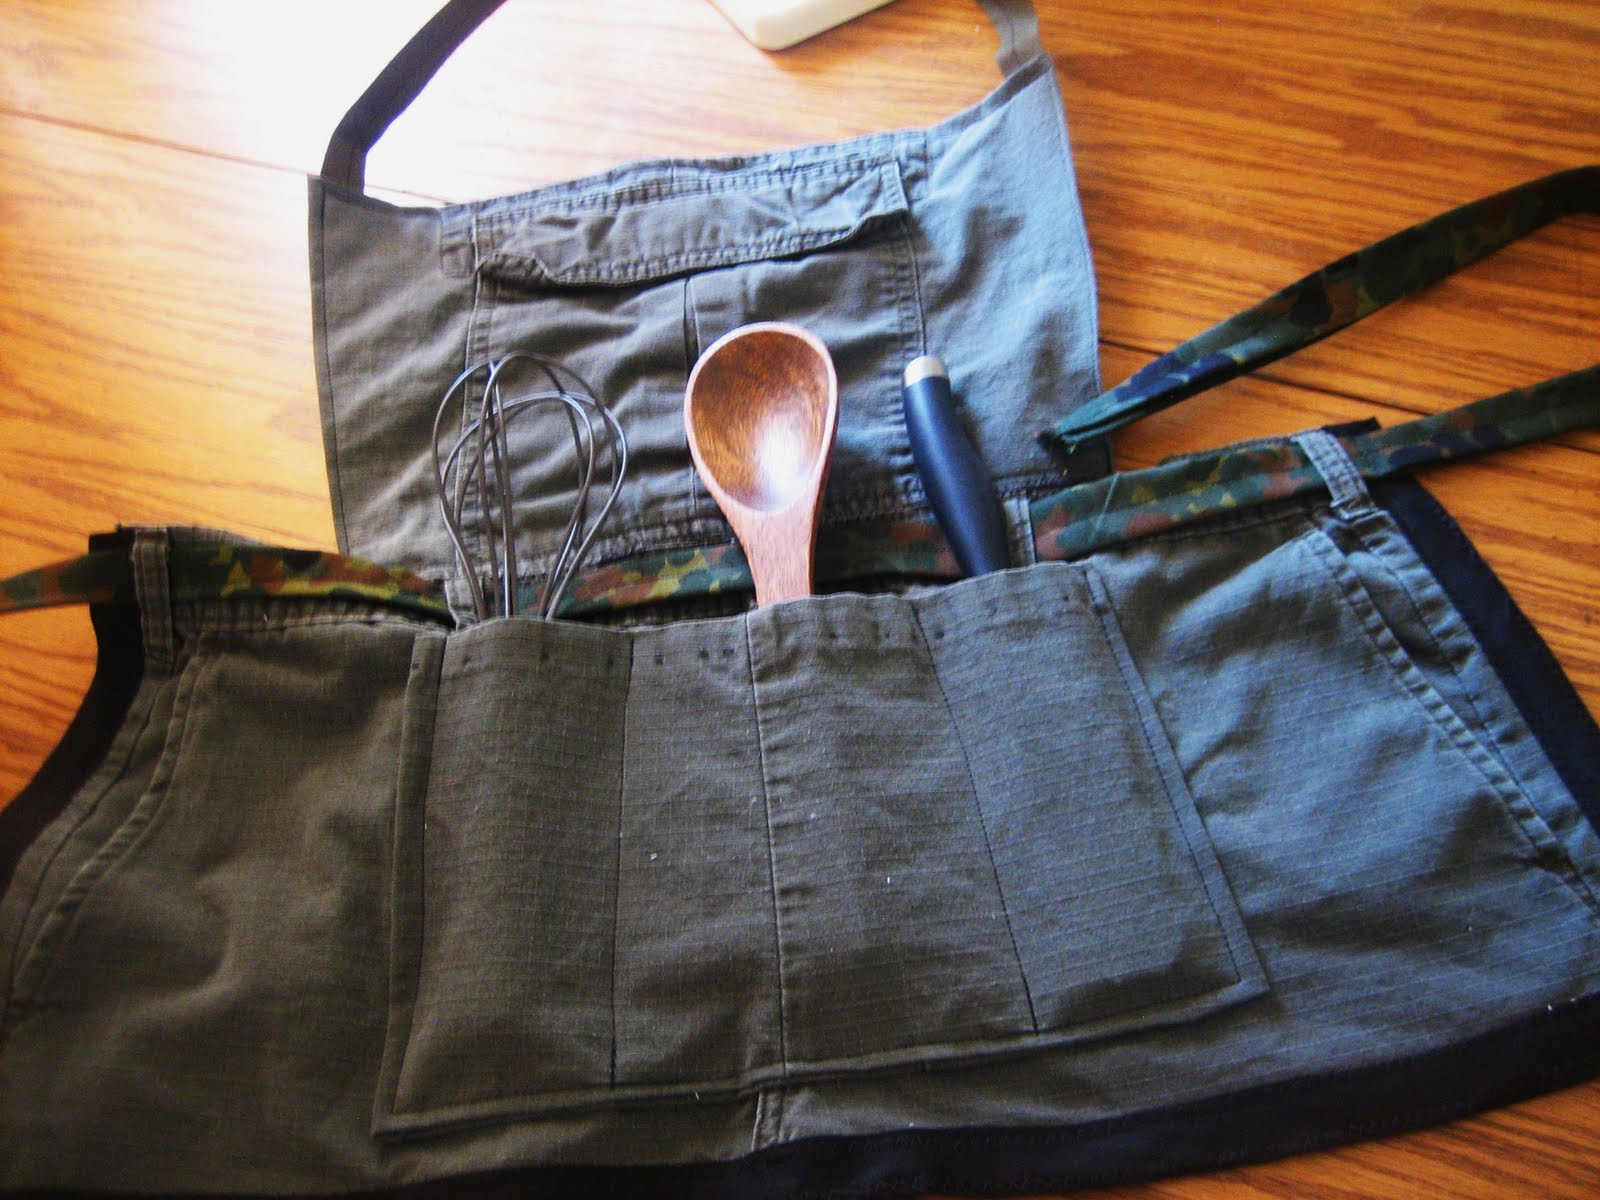 Blue apron how to recycle - Recycled Cub Scout Pant Aprons For Boys Part 2 Of The Recycled Pant Apron Series